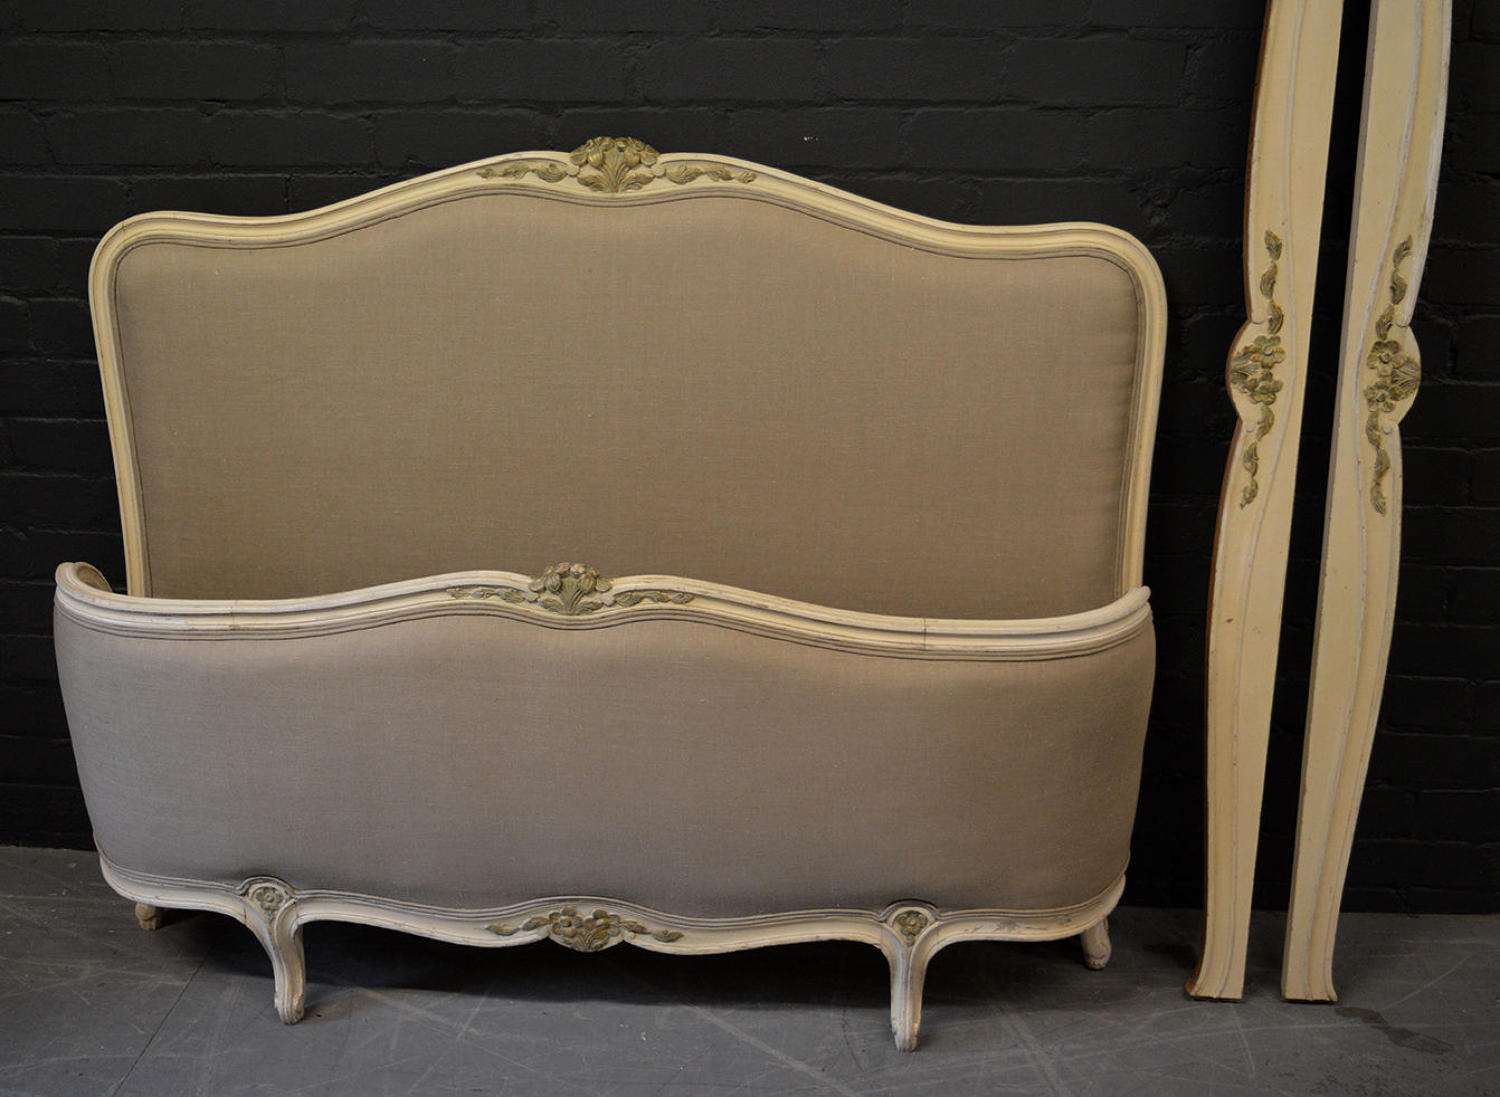 Louis XV style upholstered double bedstead